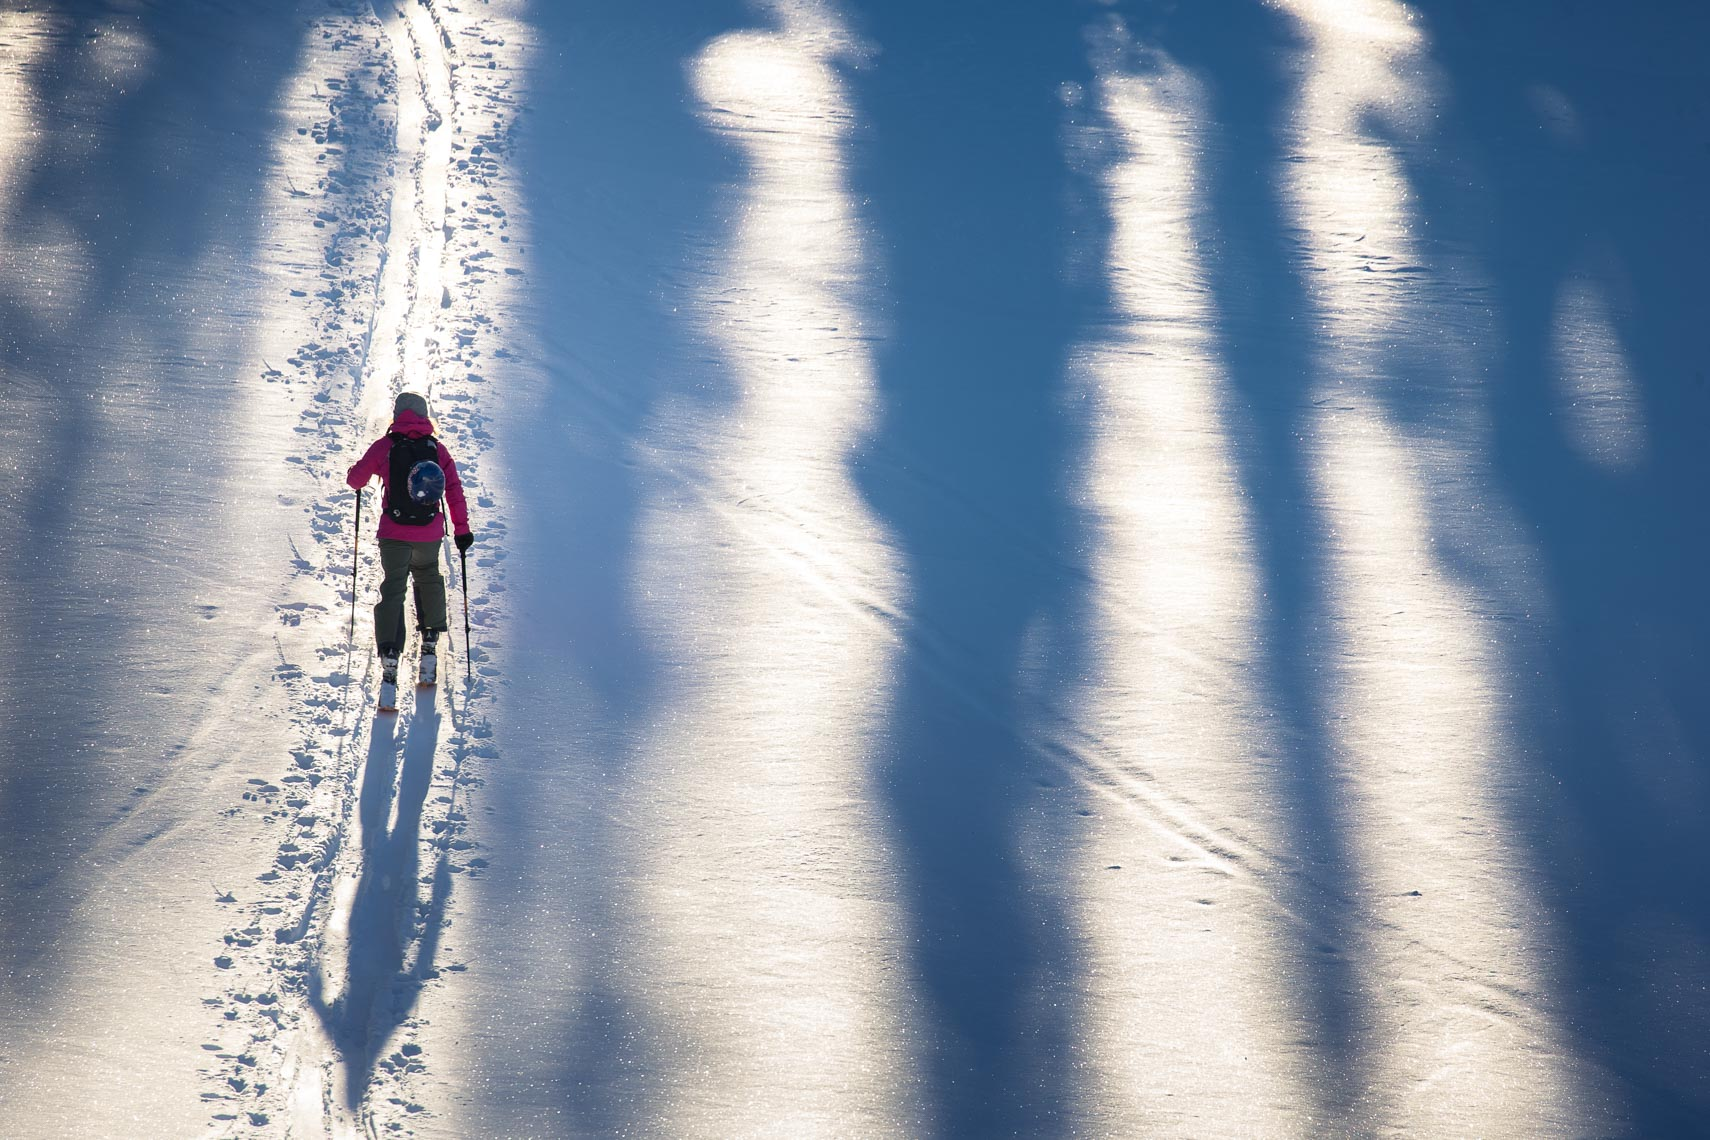 Ski touring athlete documented by Canadian ski photographer